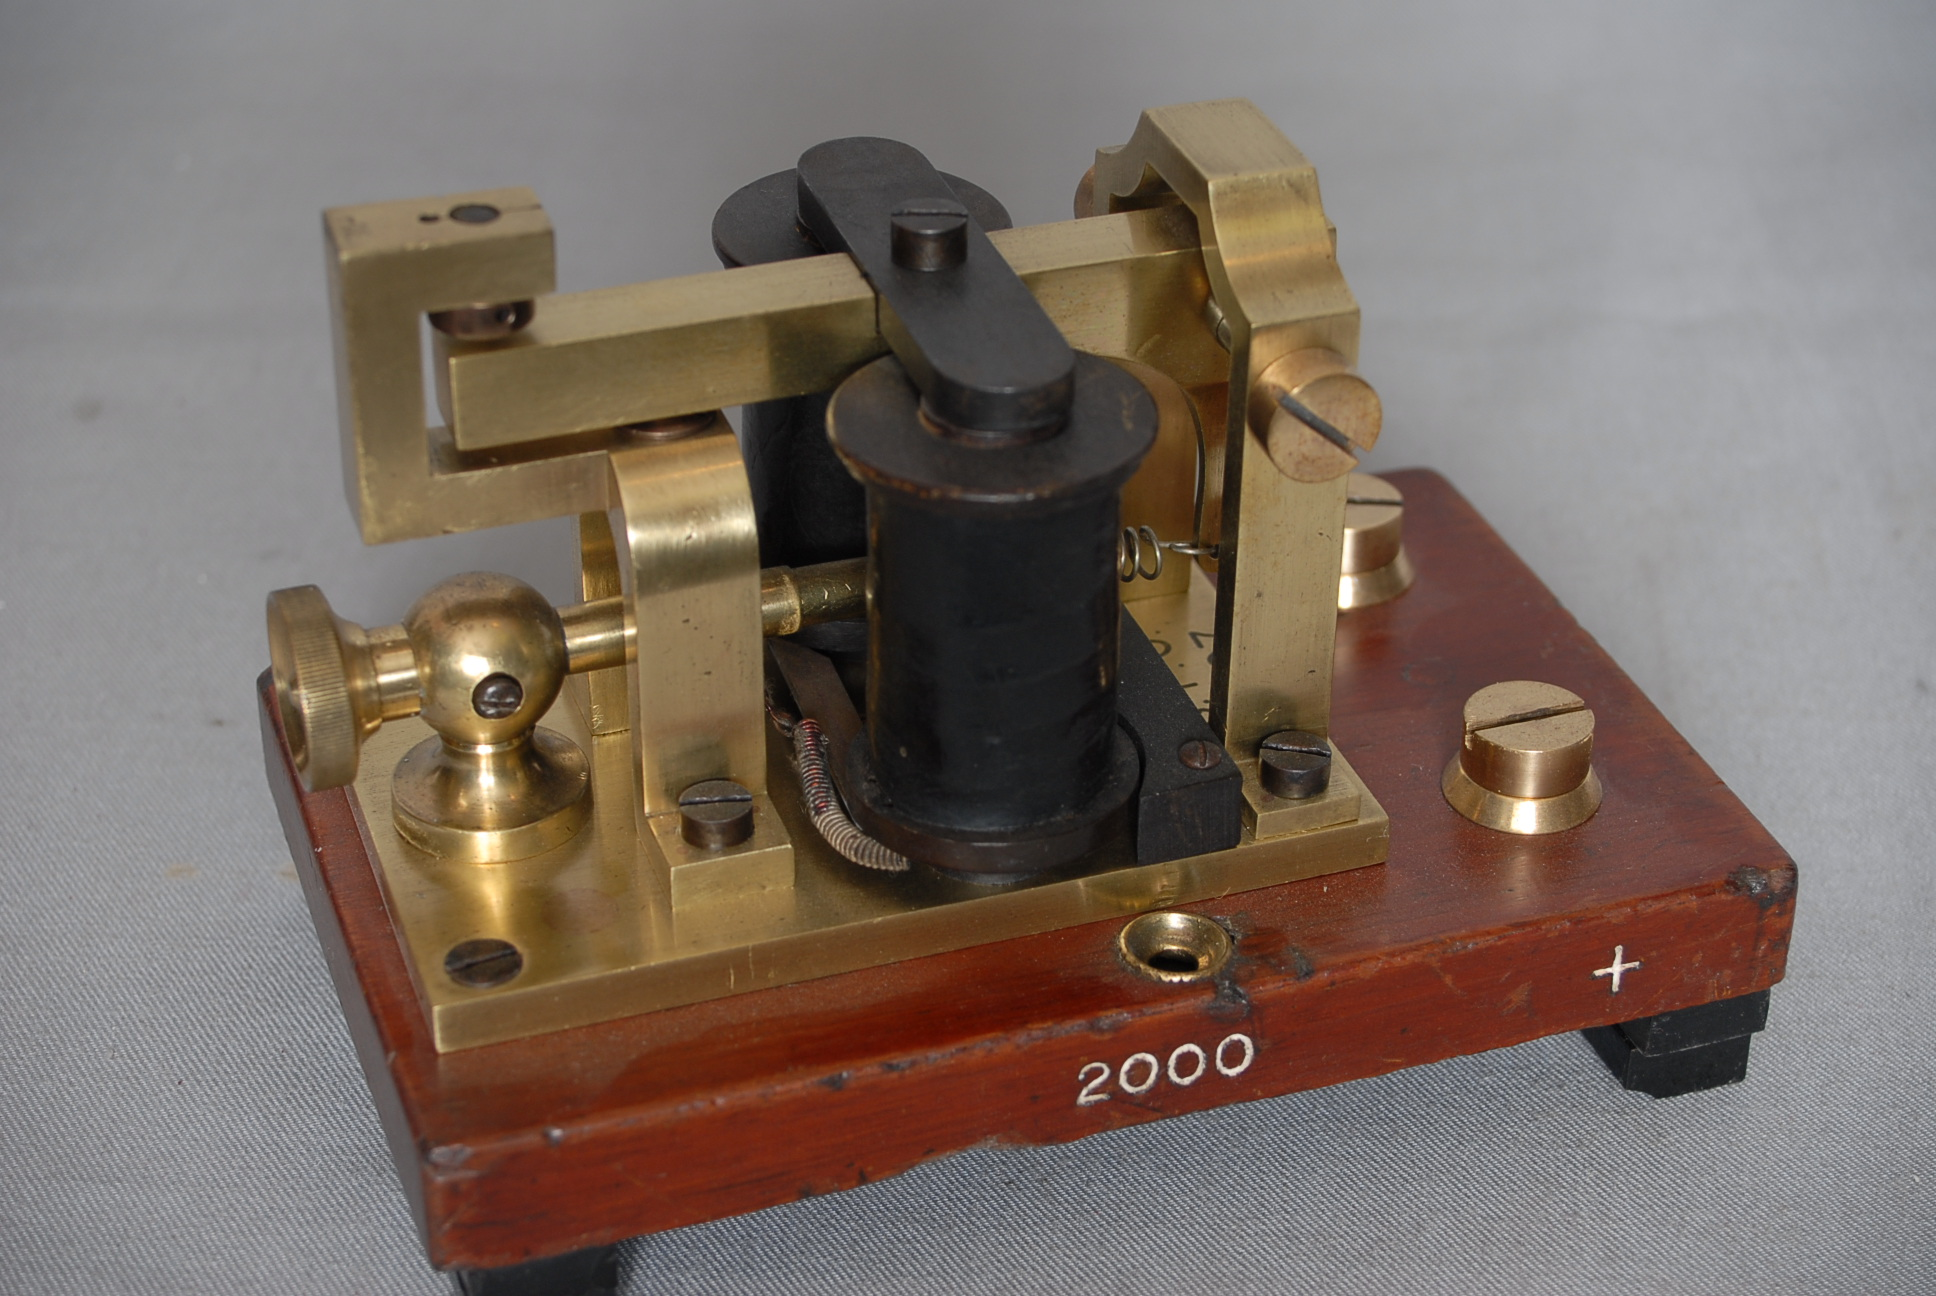 Receiving instrument for Morse code, invented by CC Vyle in the late 1800's and was in use until the 1960's.